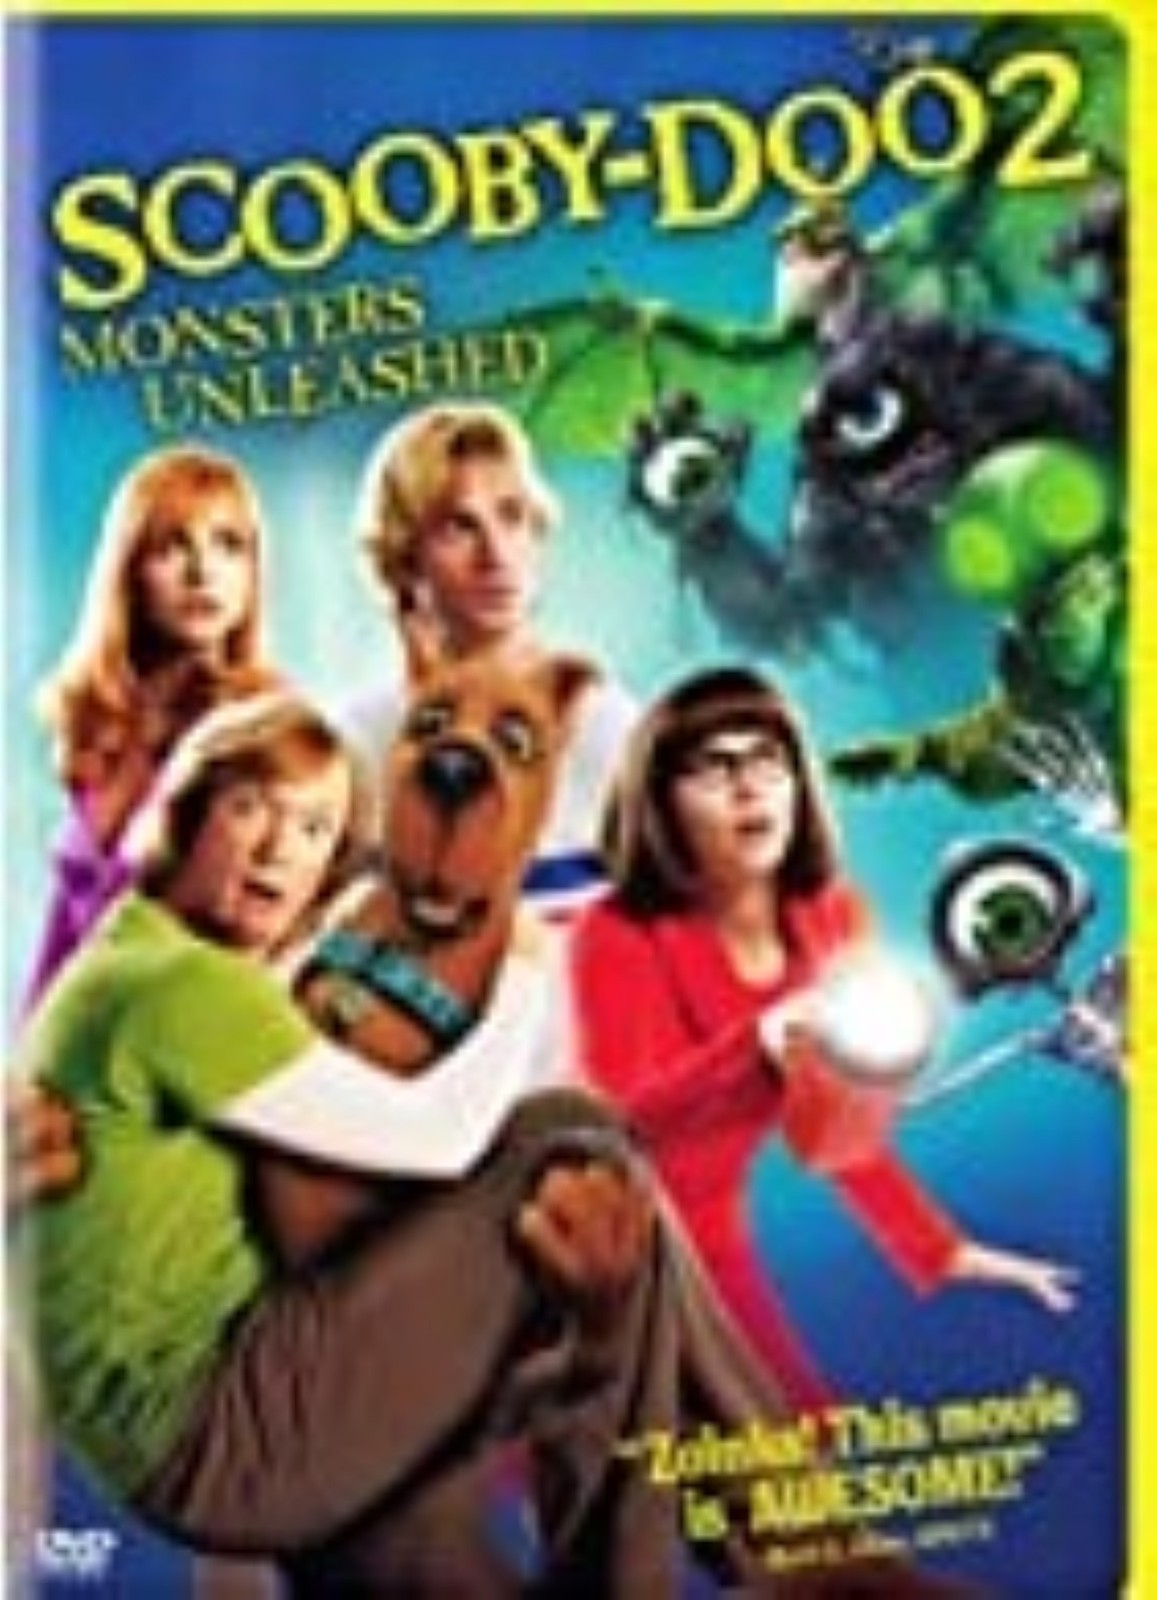 Scooby-Doo 2: Monsters Unleashed Dvd